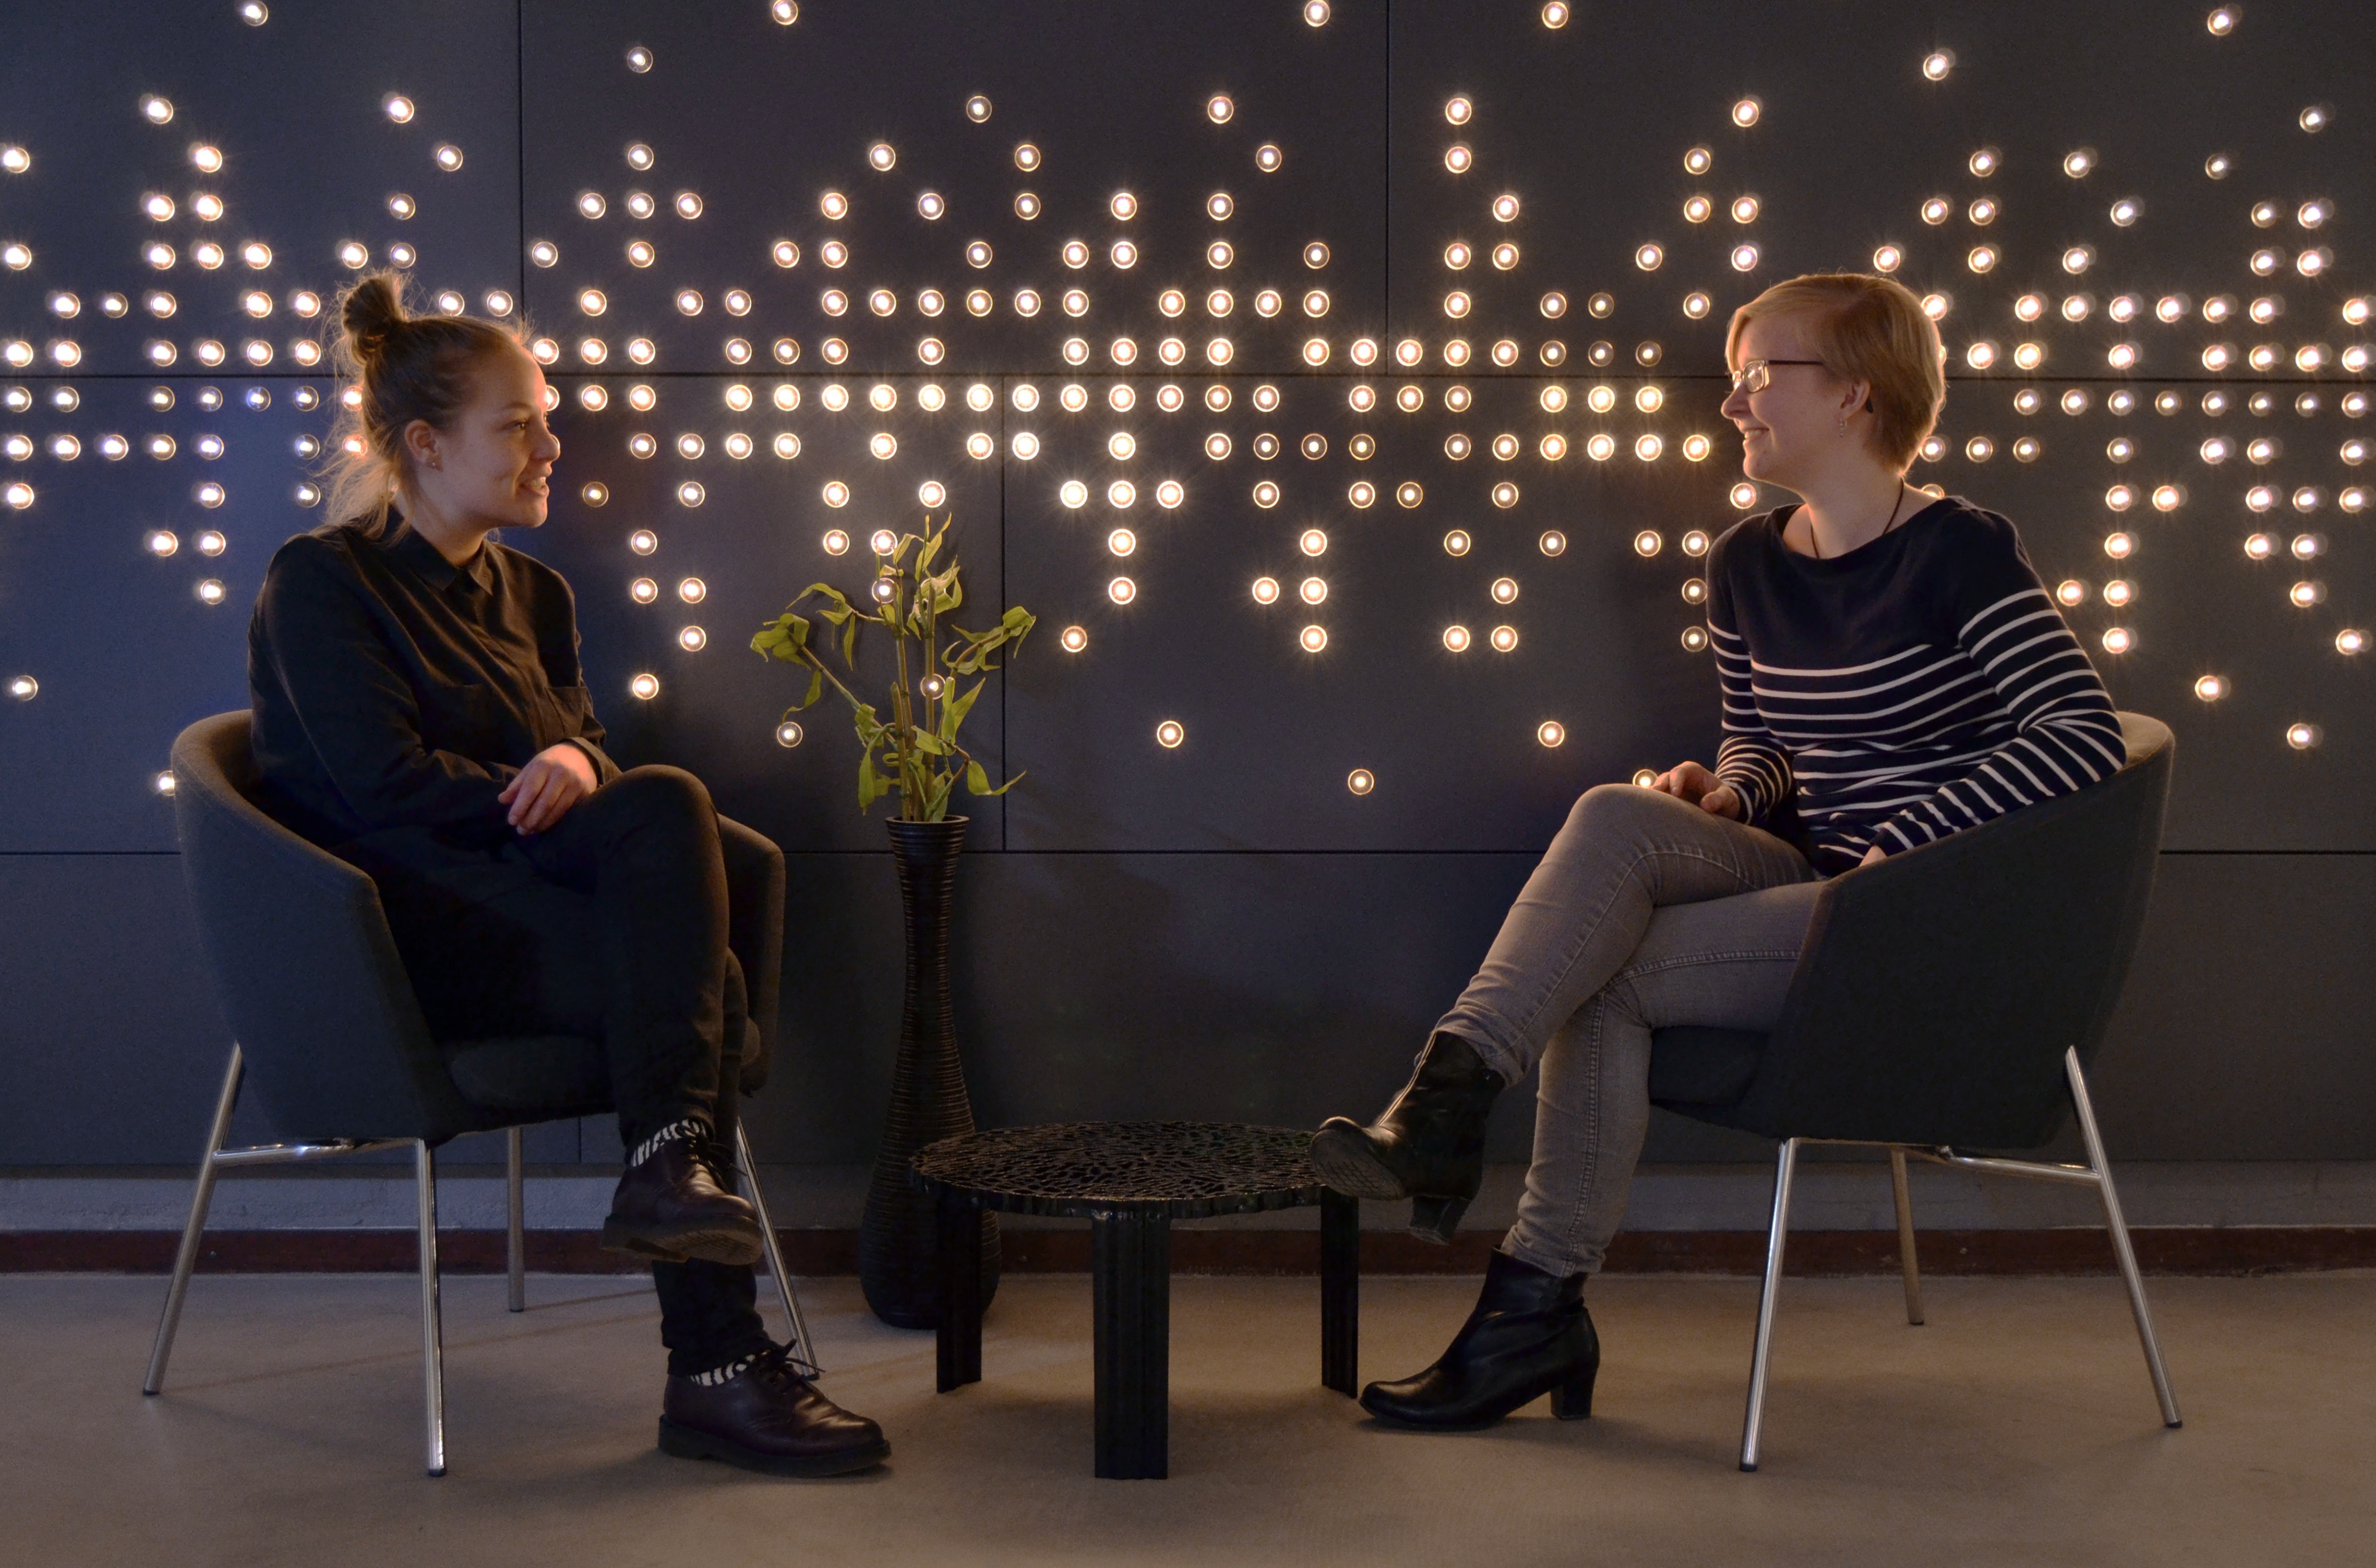 Philips Makes Interior Walls Shimmer Dazzle And Delight